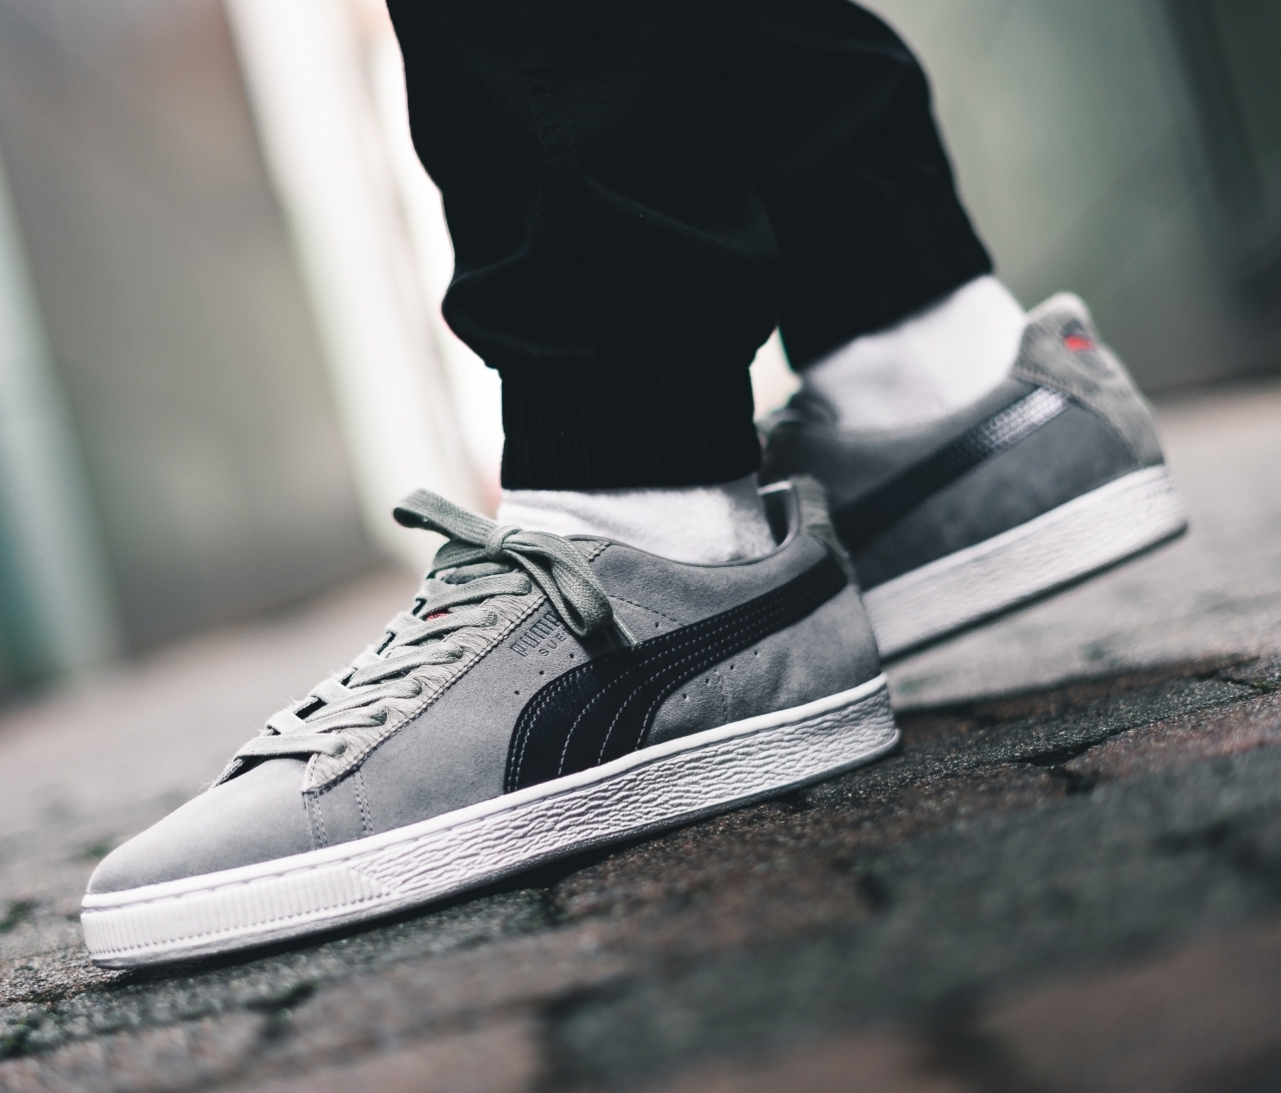 puma-x-staple-pigeon-suede-classic-grey-white-366334-01-mood-1.jpg